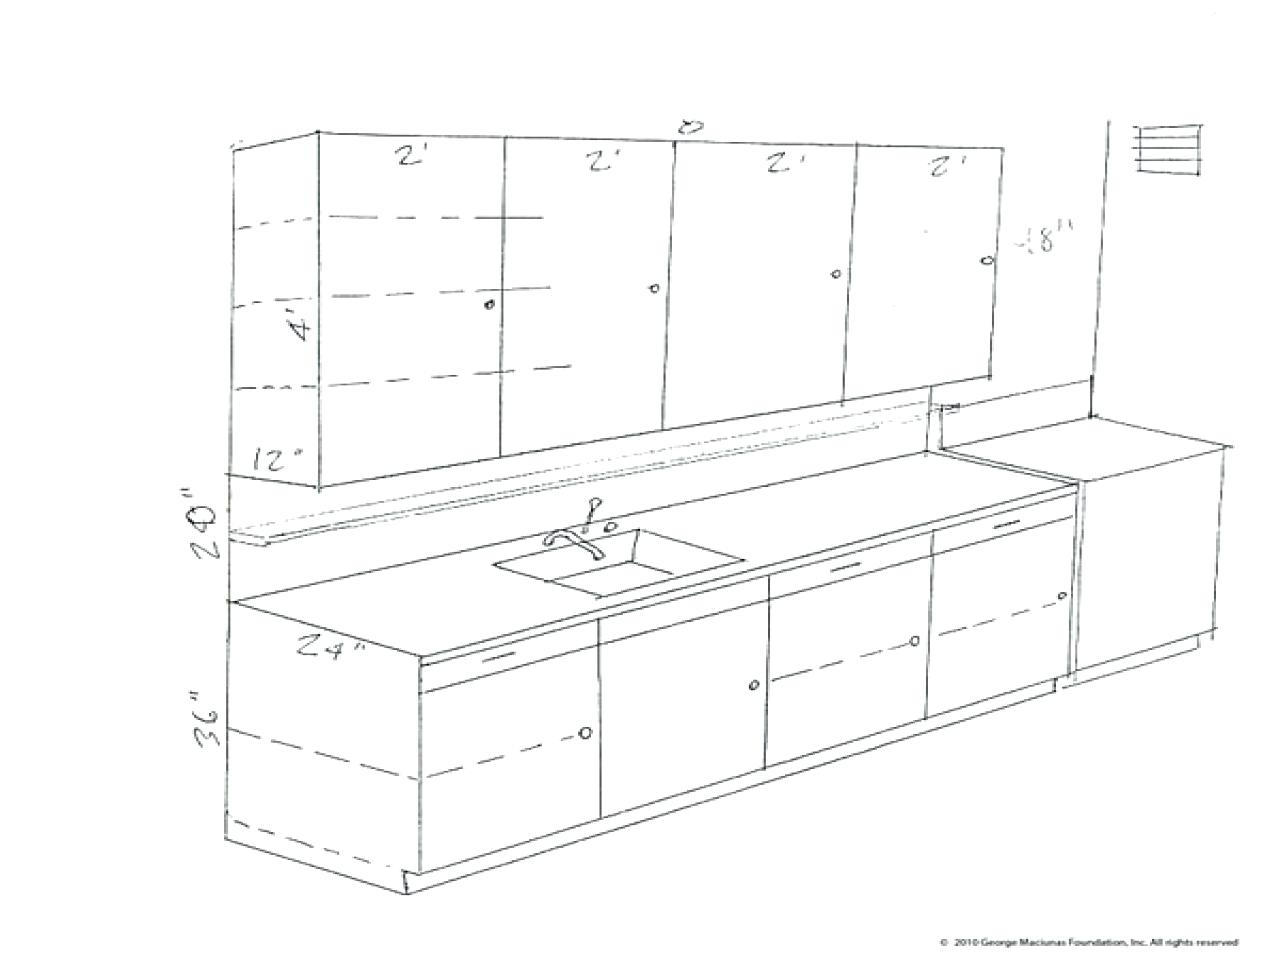 1280x960 kitchen base cabinet dimensions kitchen sink base cabinet sizes - Kitchen Sink Dimensions